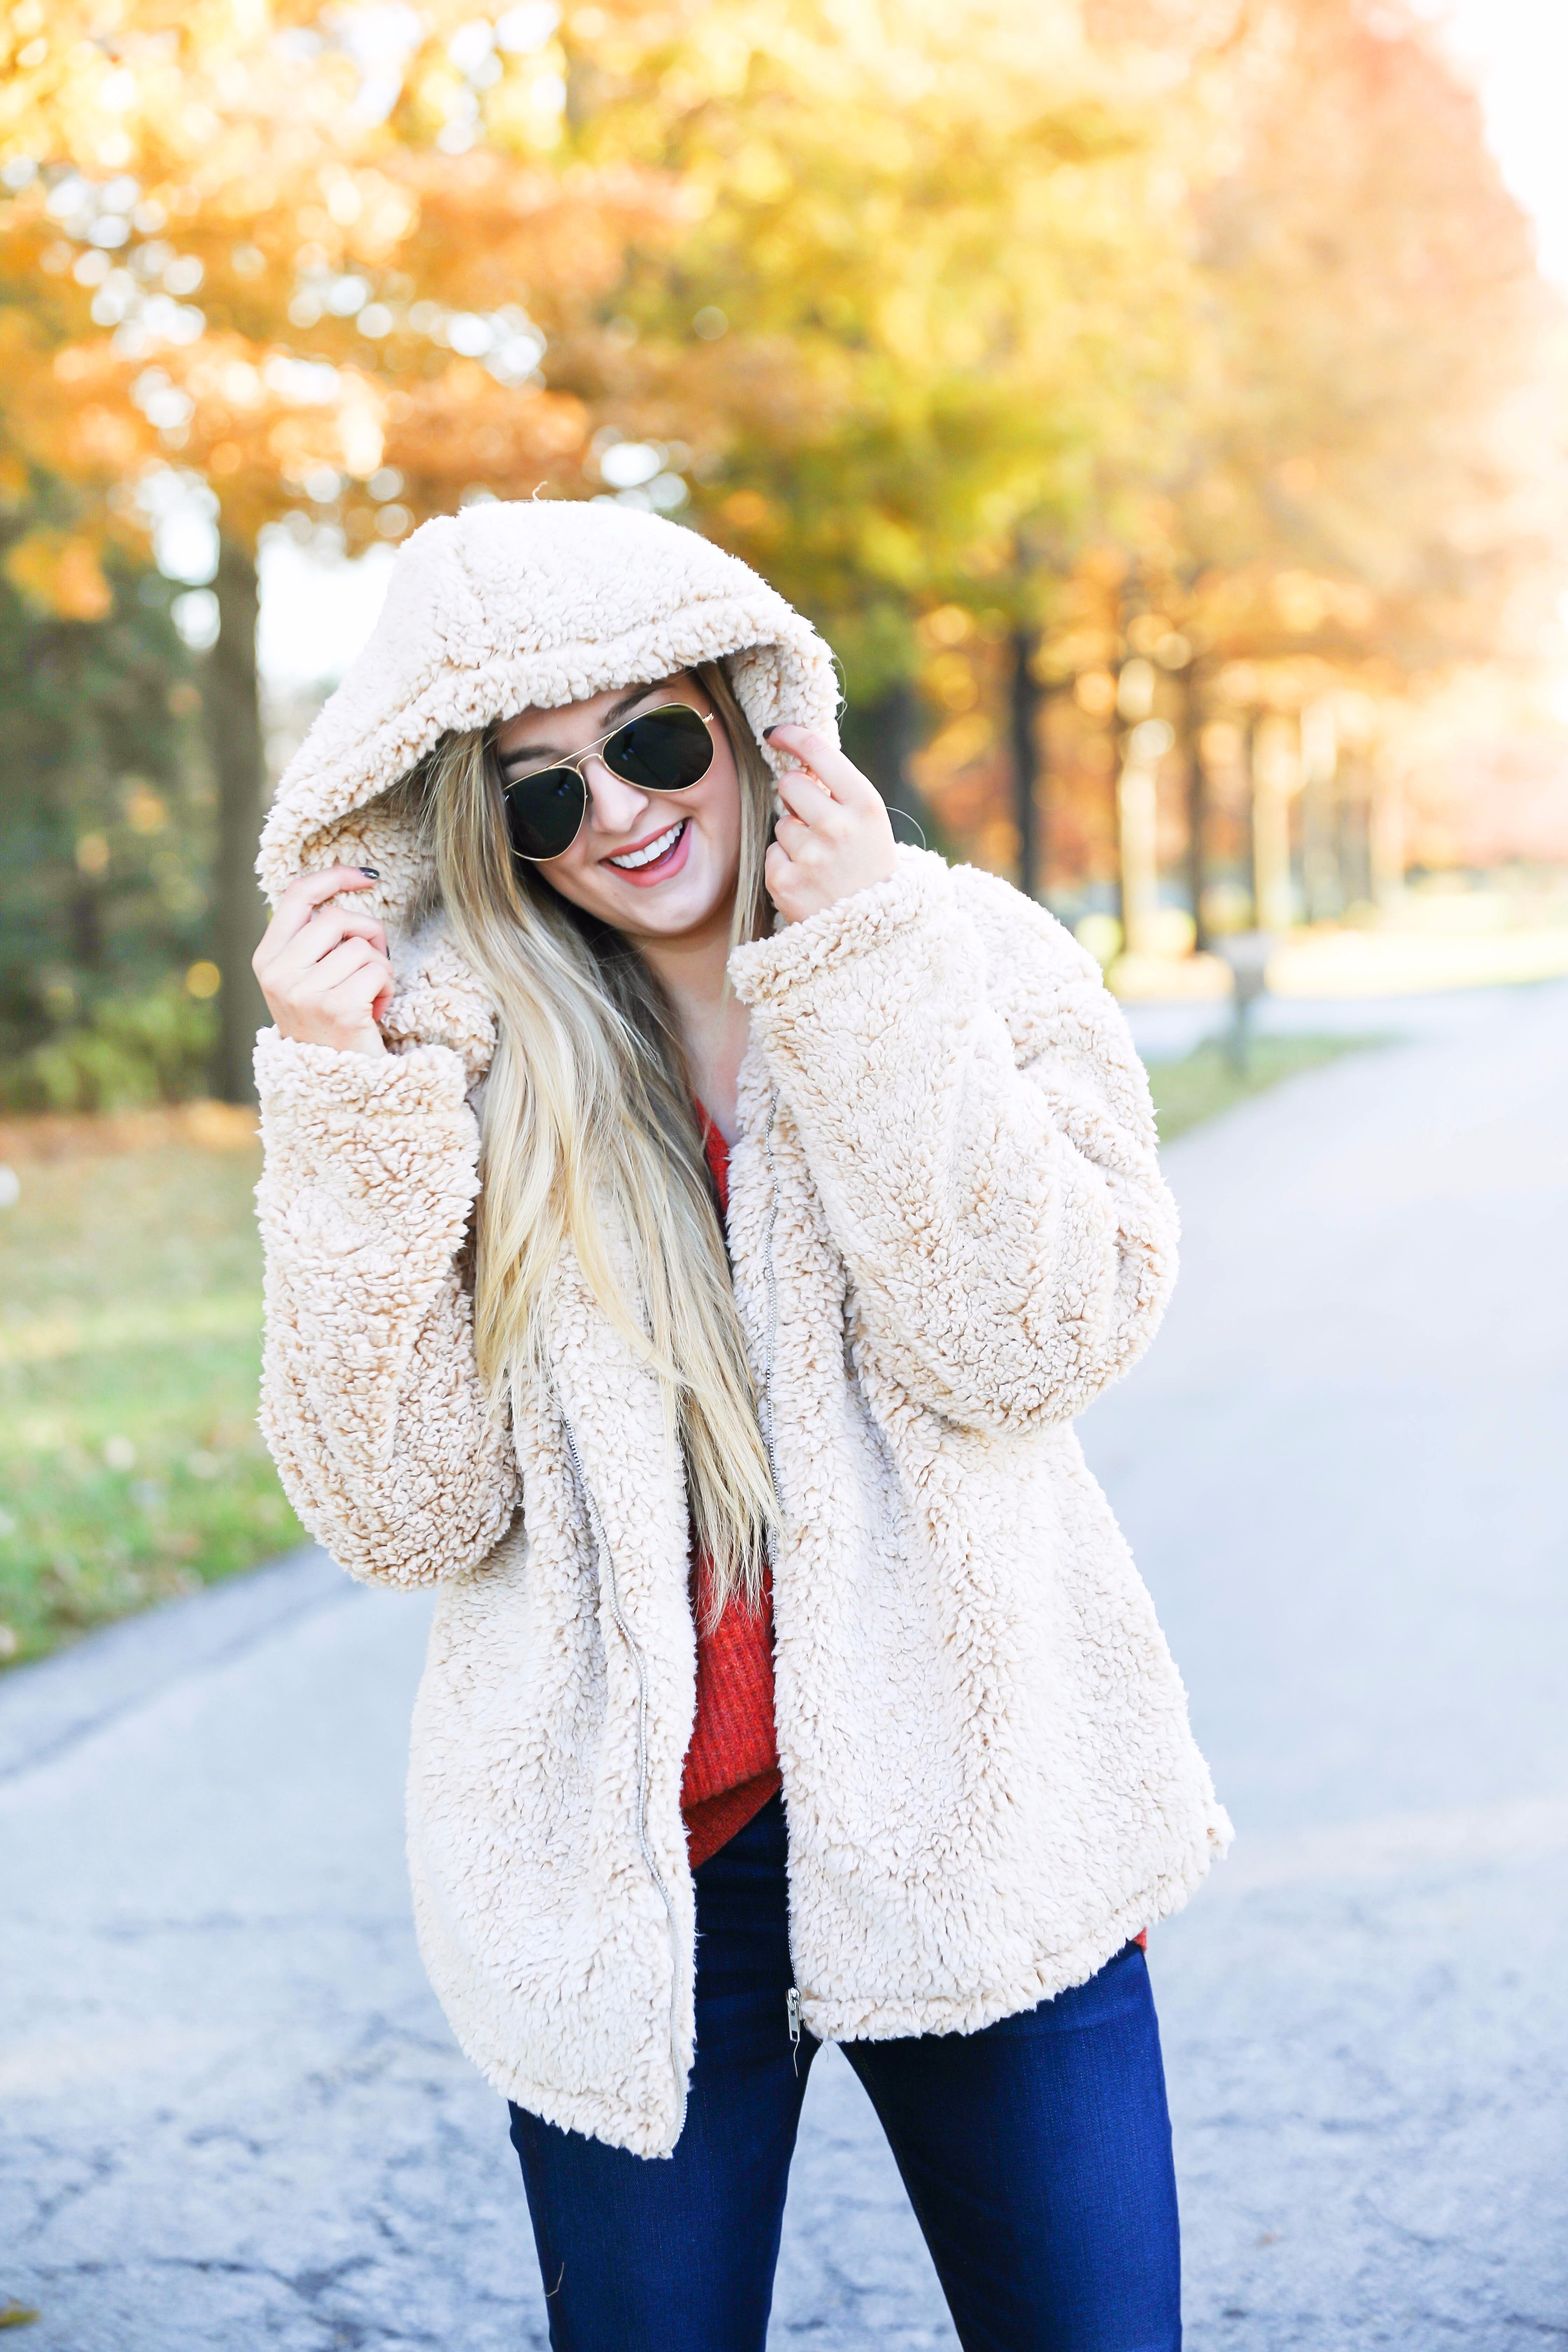 red sweater and teddy bear coat this adorable fall outfit is so cozy and the